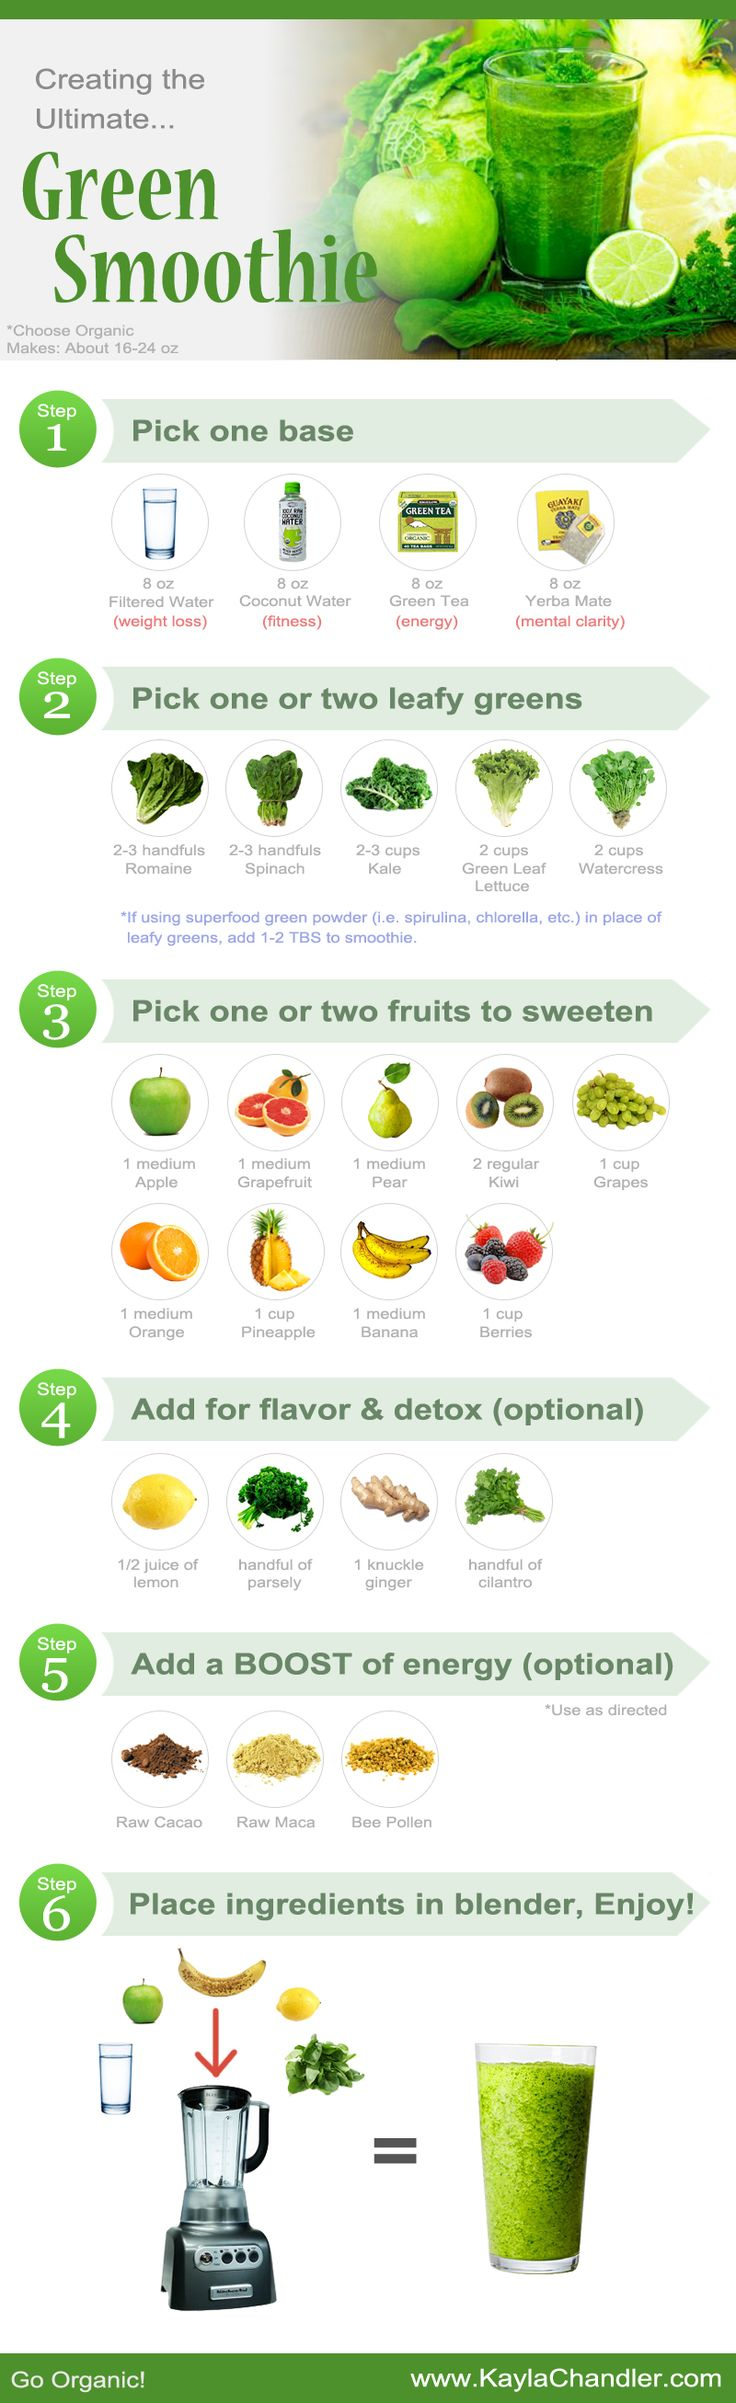 We think this guide to making yummy green smoothies is sure to pack the nutrients into your diet!